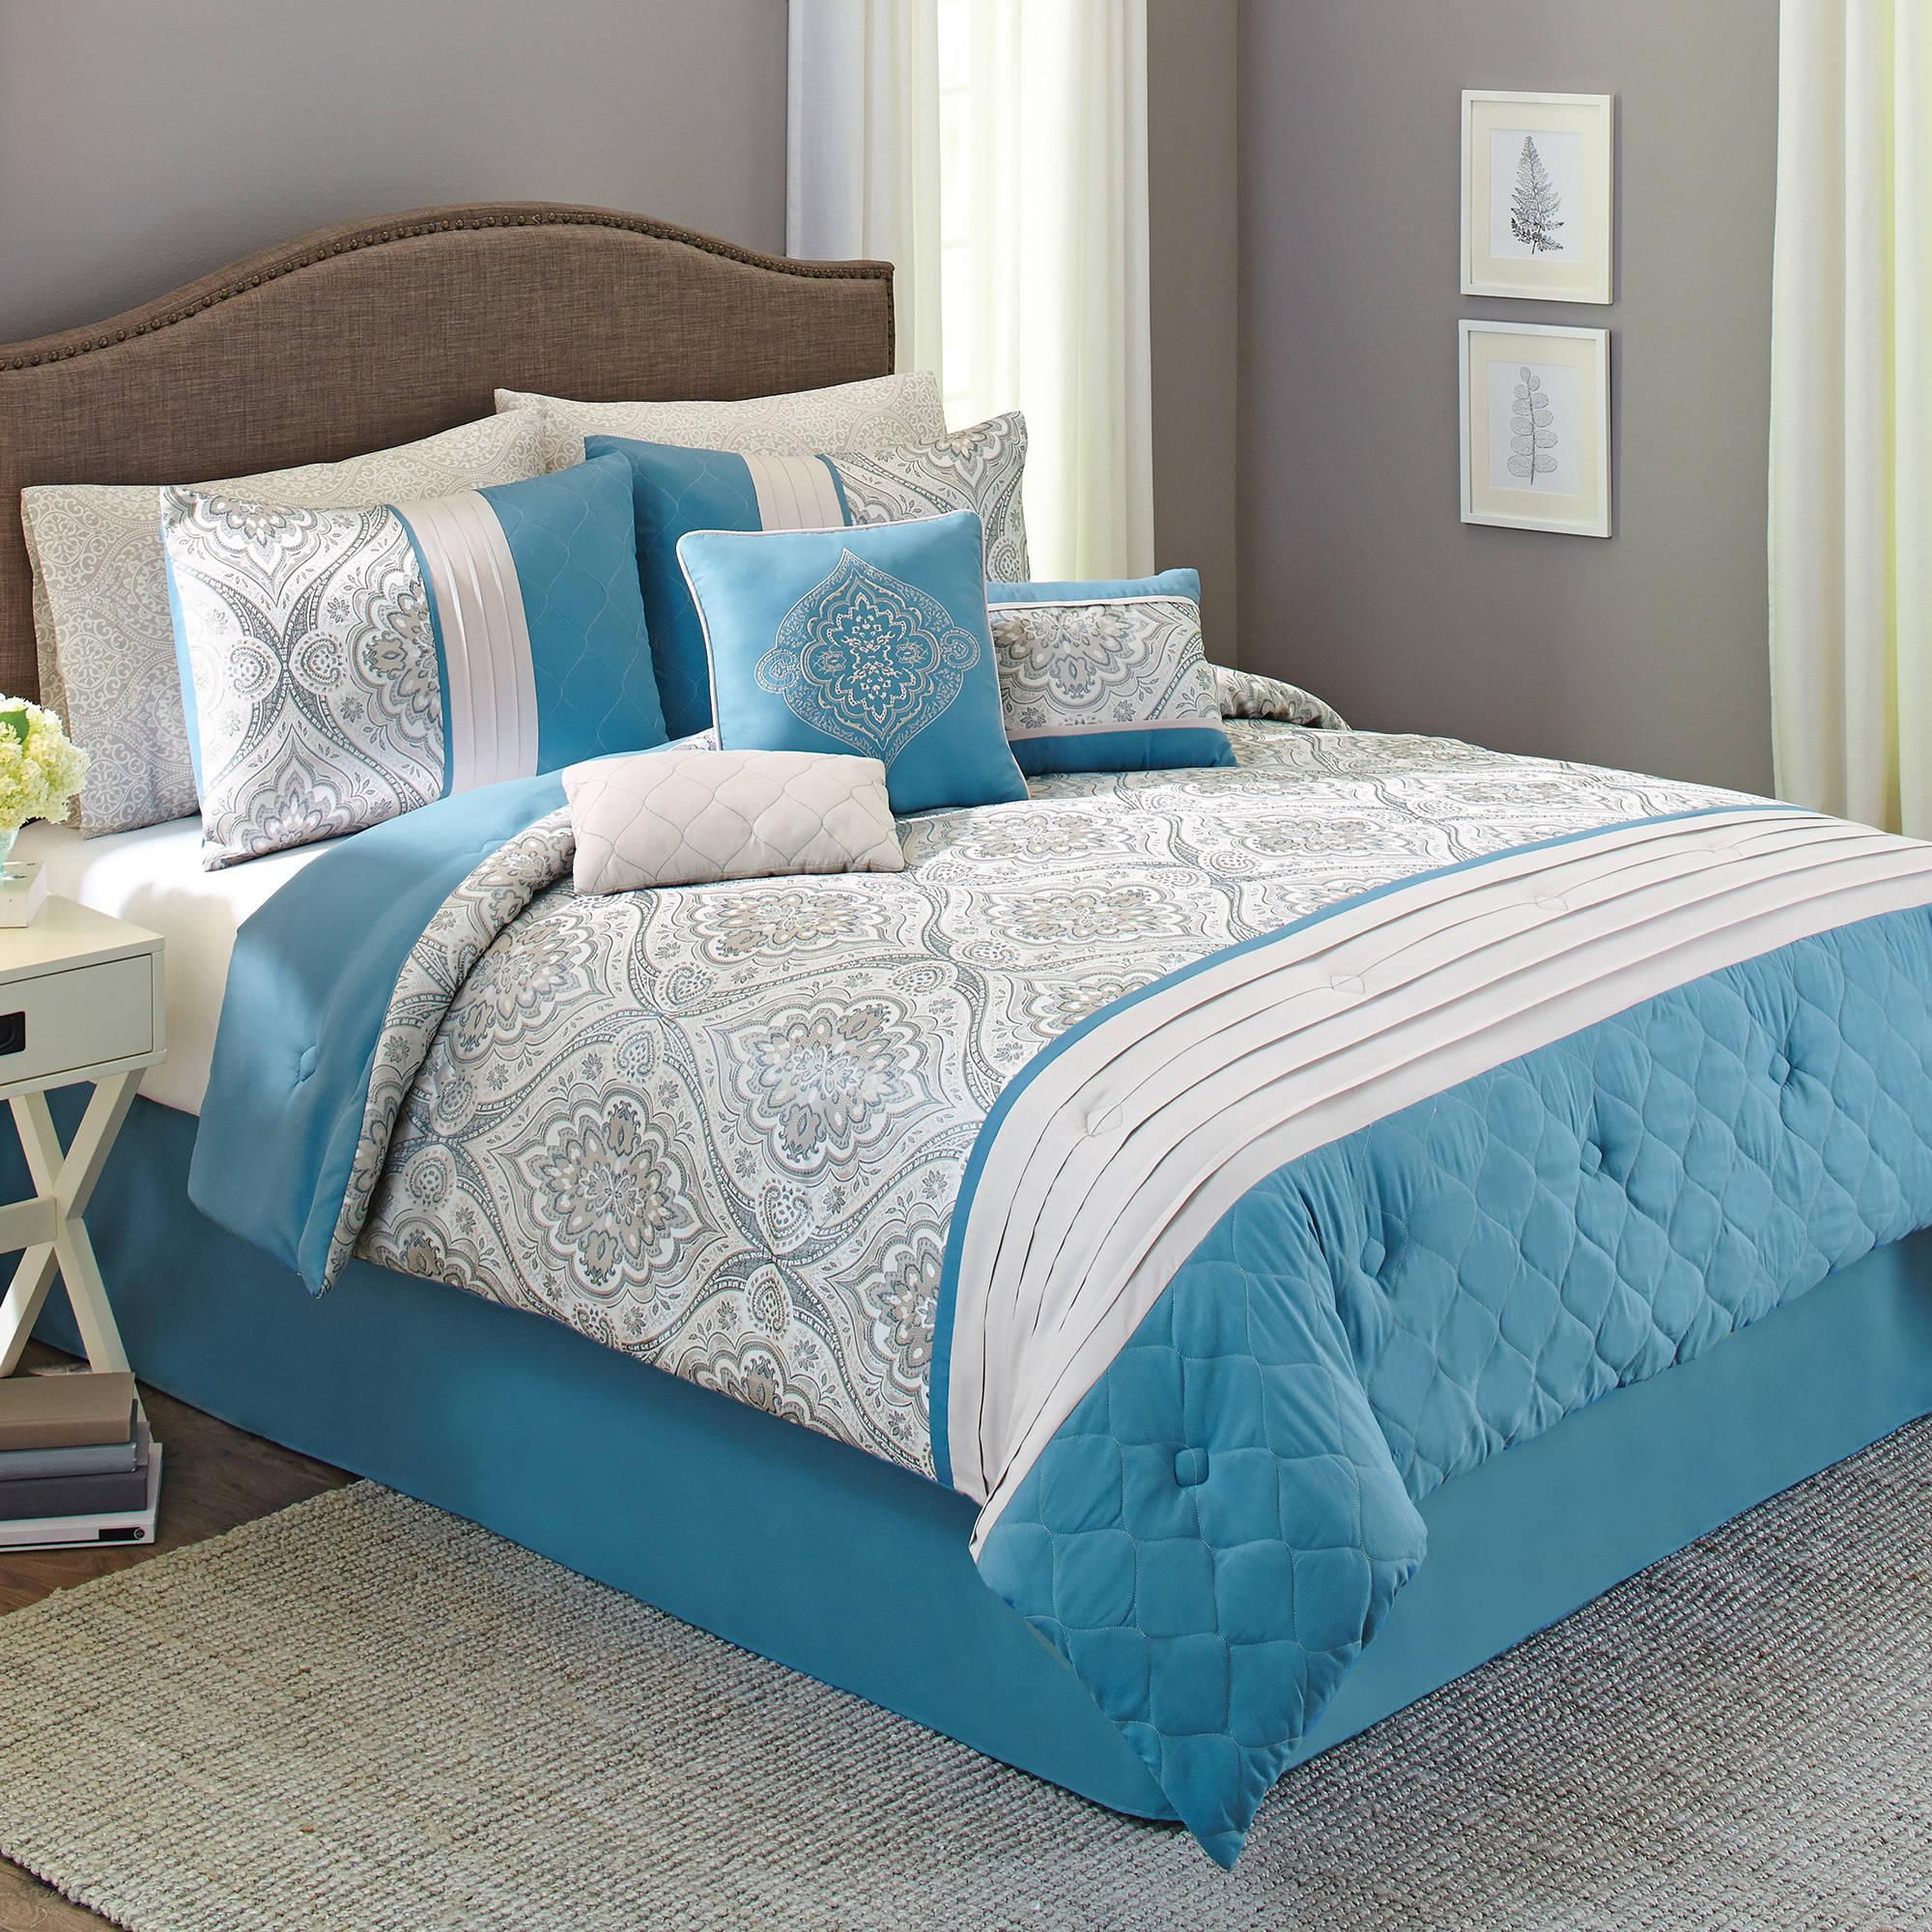 Better homes and garden comforter sets homesfeed - Bedroom sheets and comforter sets ...